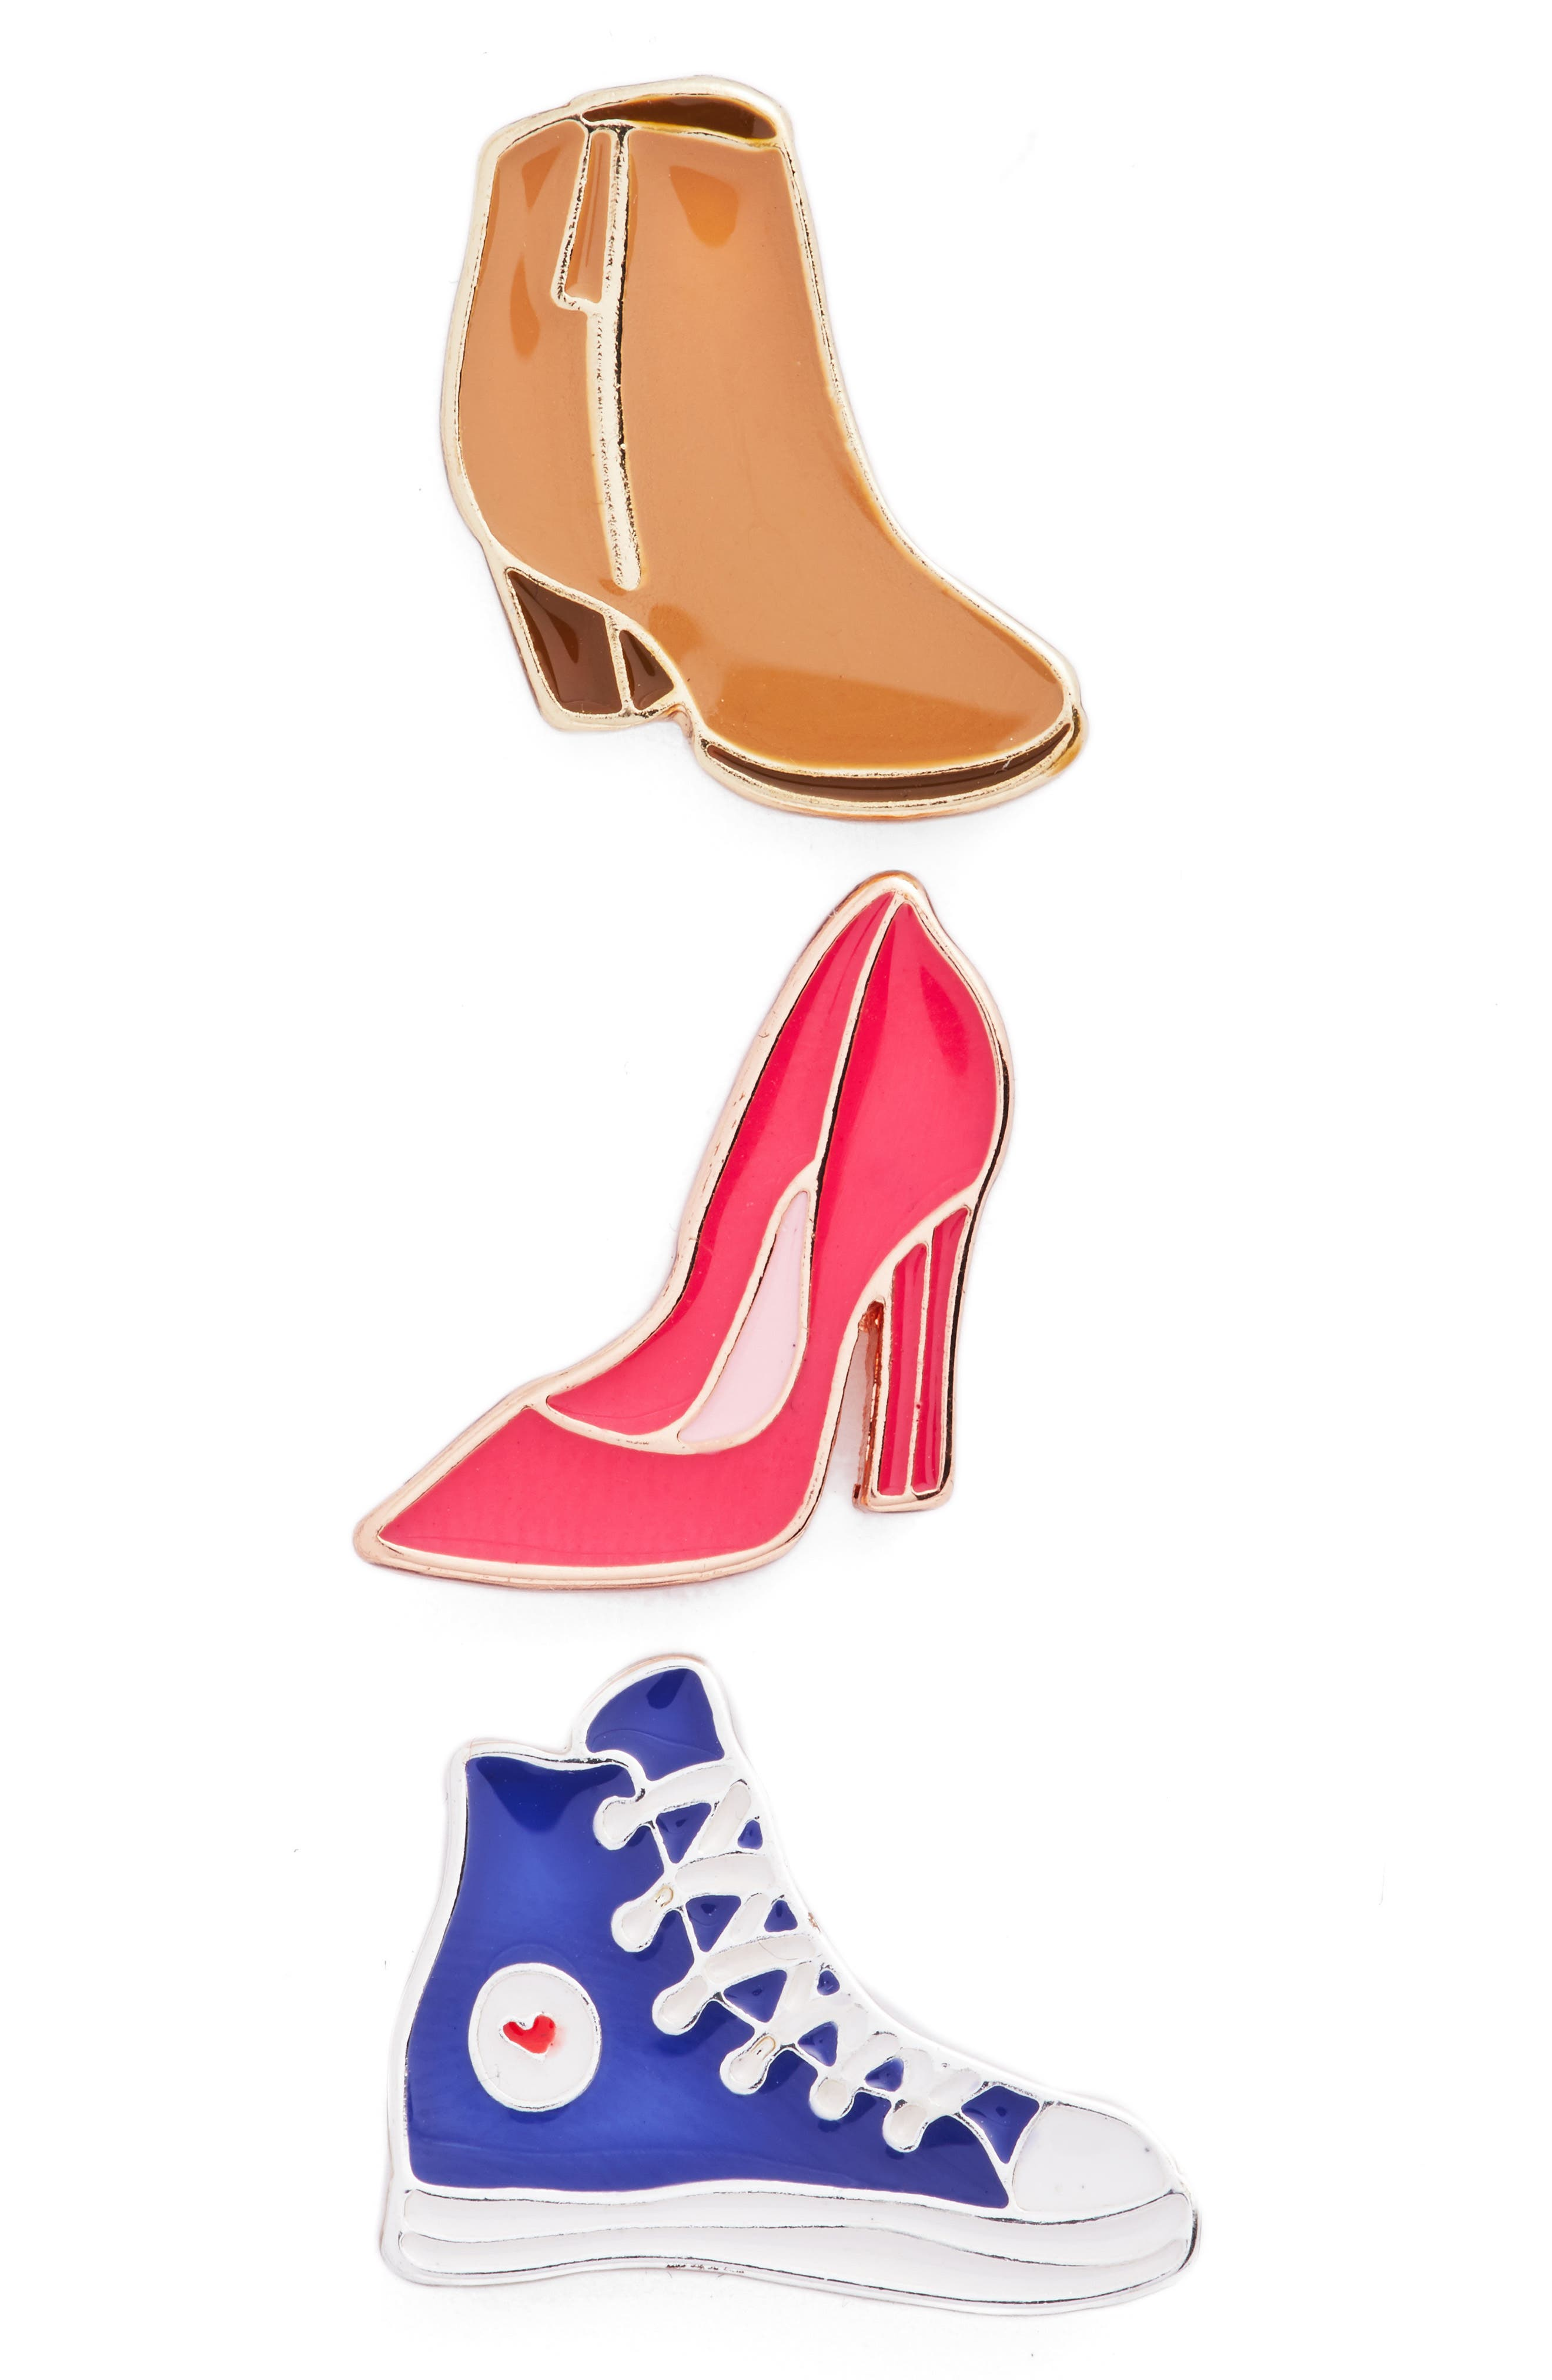 Berry Shoe Pack of 3 Pins